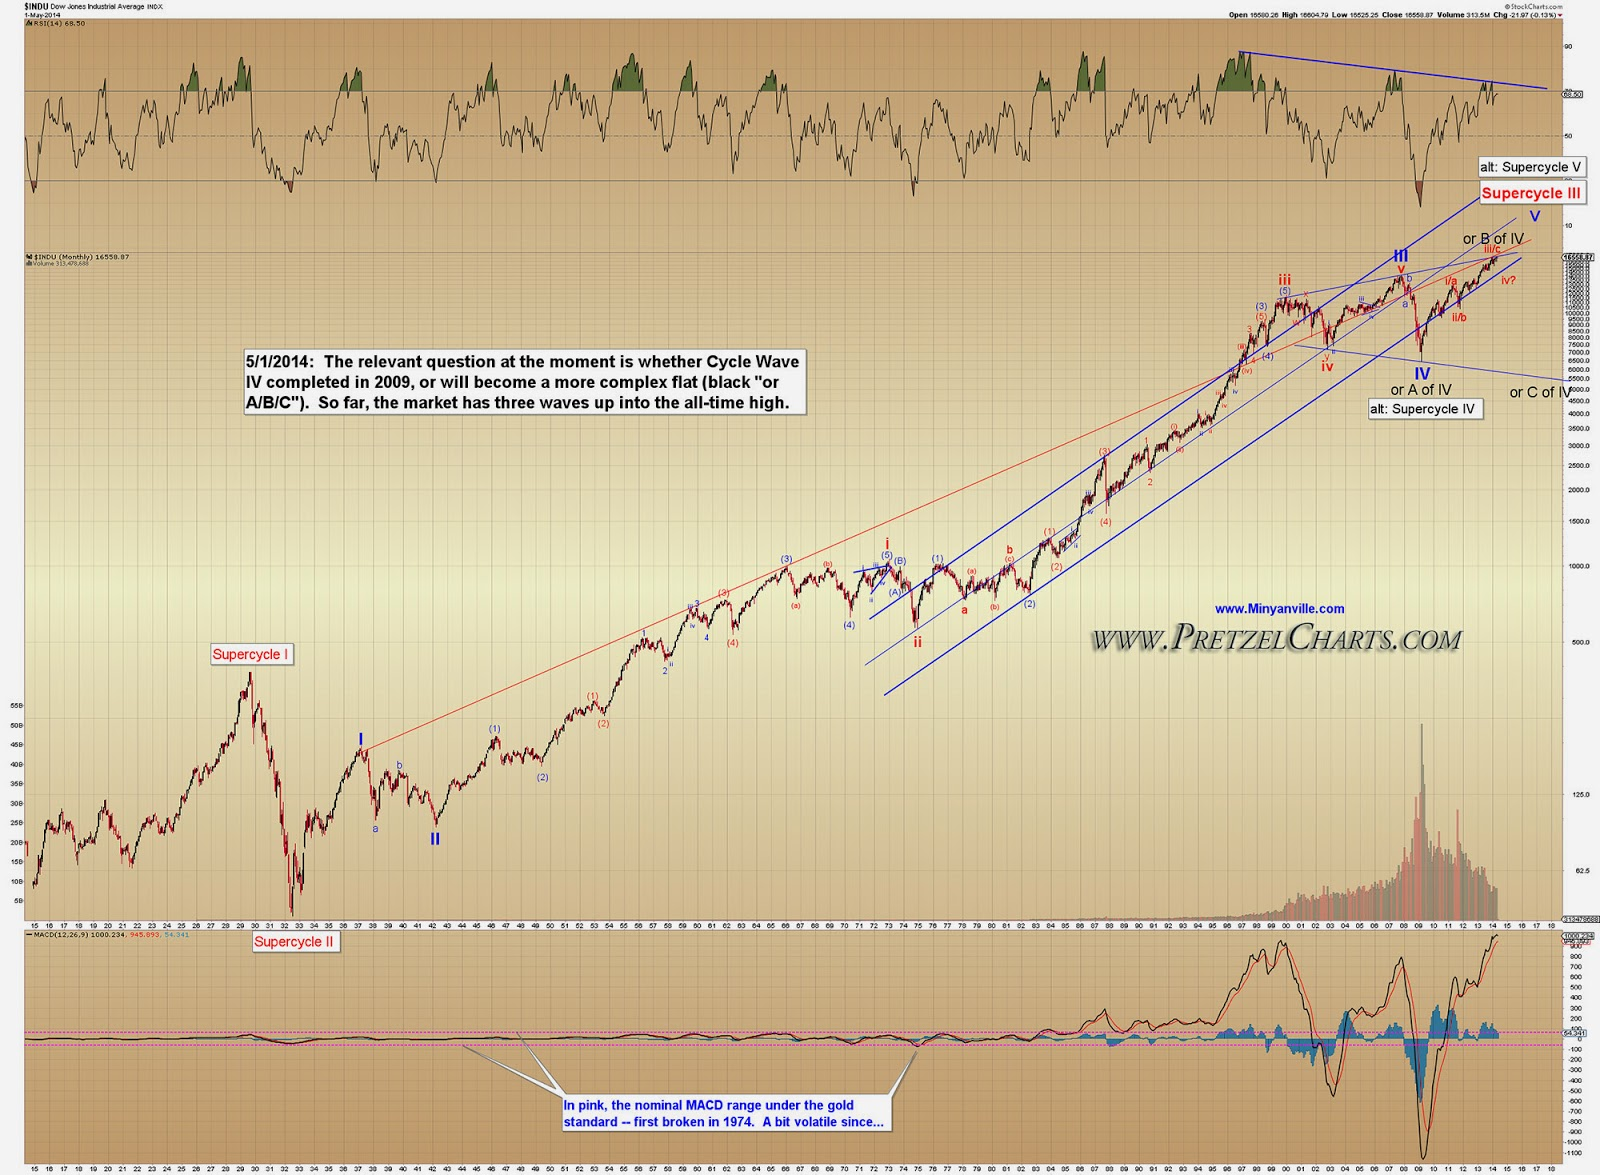 Let S Take Another Look At The Rus 2000 Rut Chart Which Shows Small Caps Remain In An Intermediate Down Trend Investors Are Still Avoiding Risk